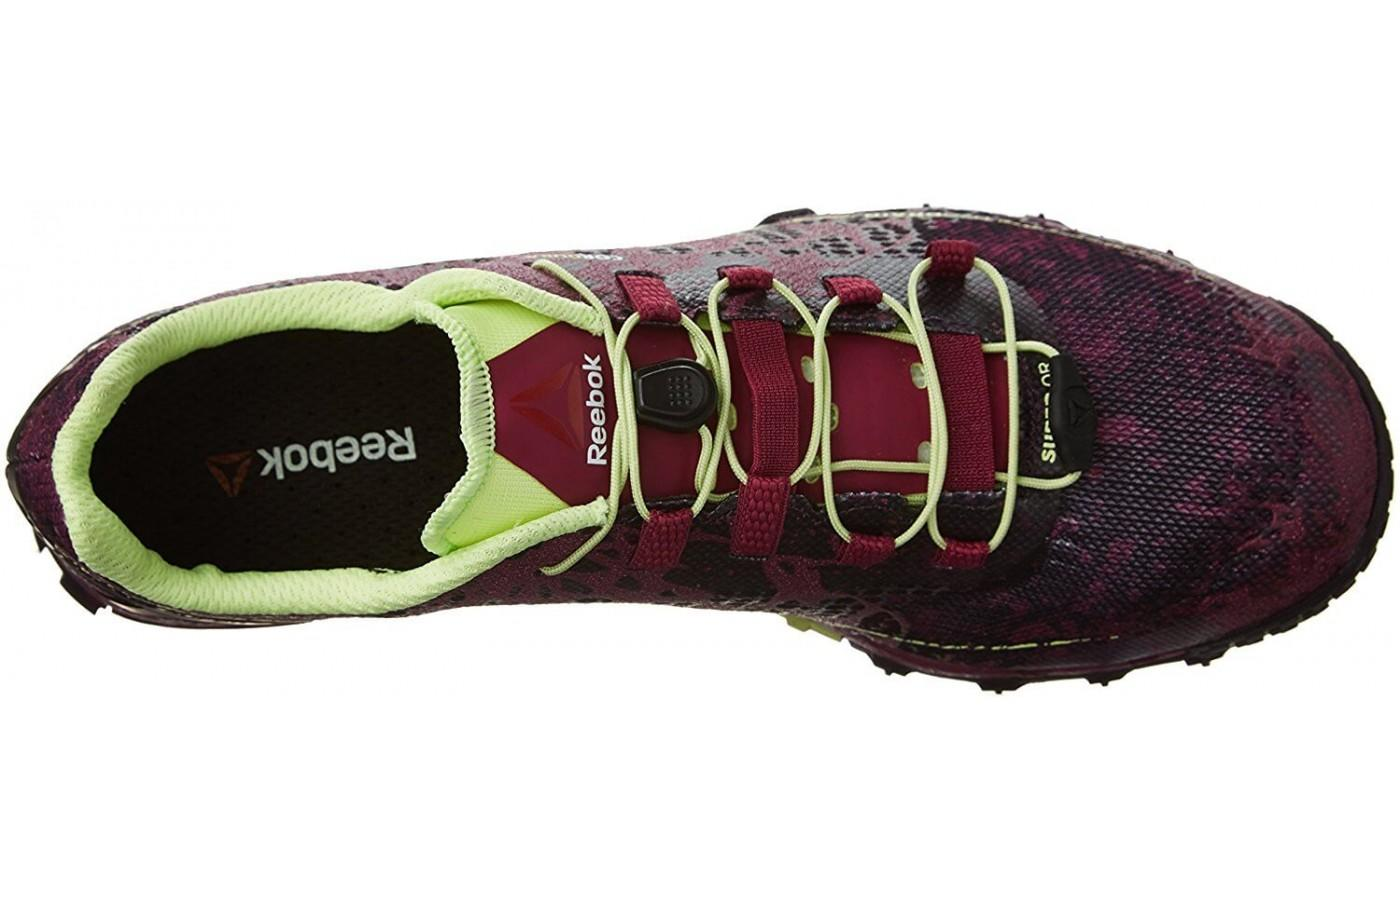 Here is Reebok All Terrain Super's lacing system and upper